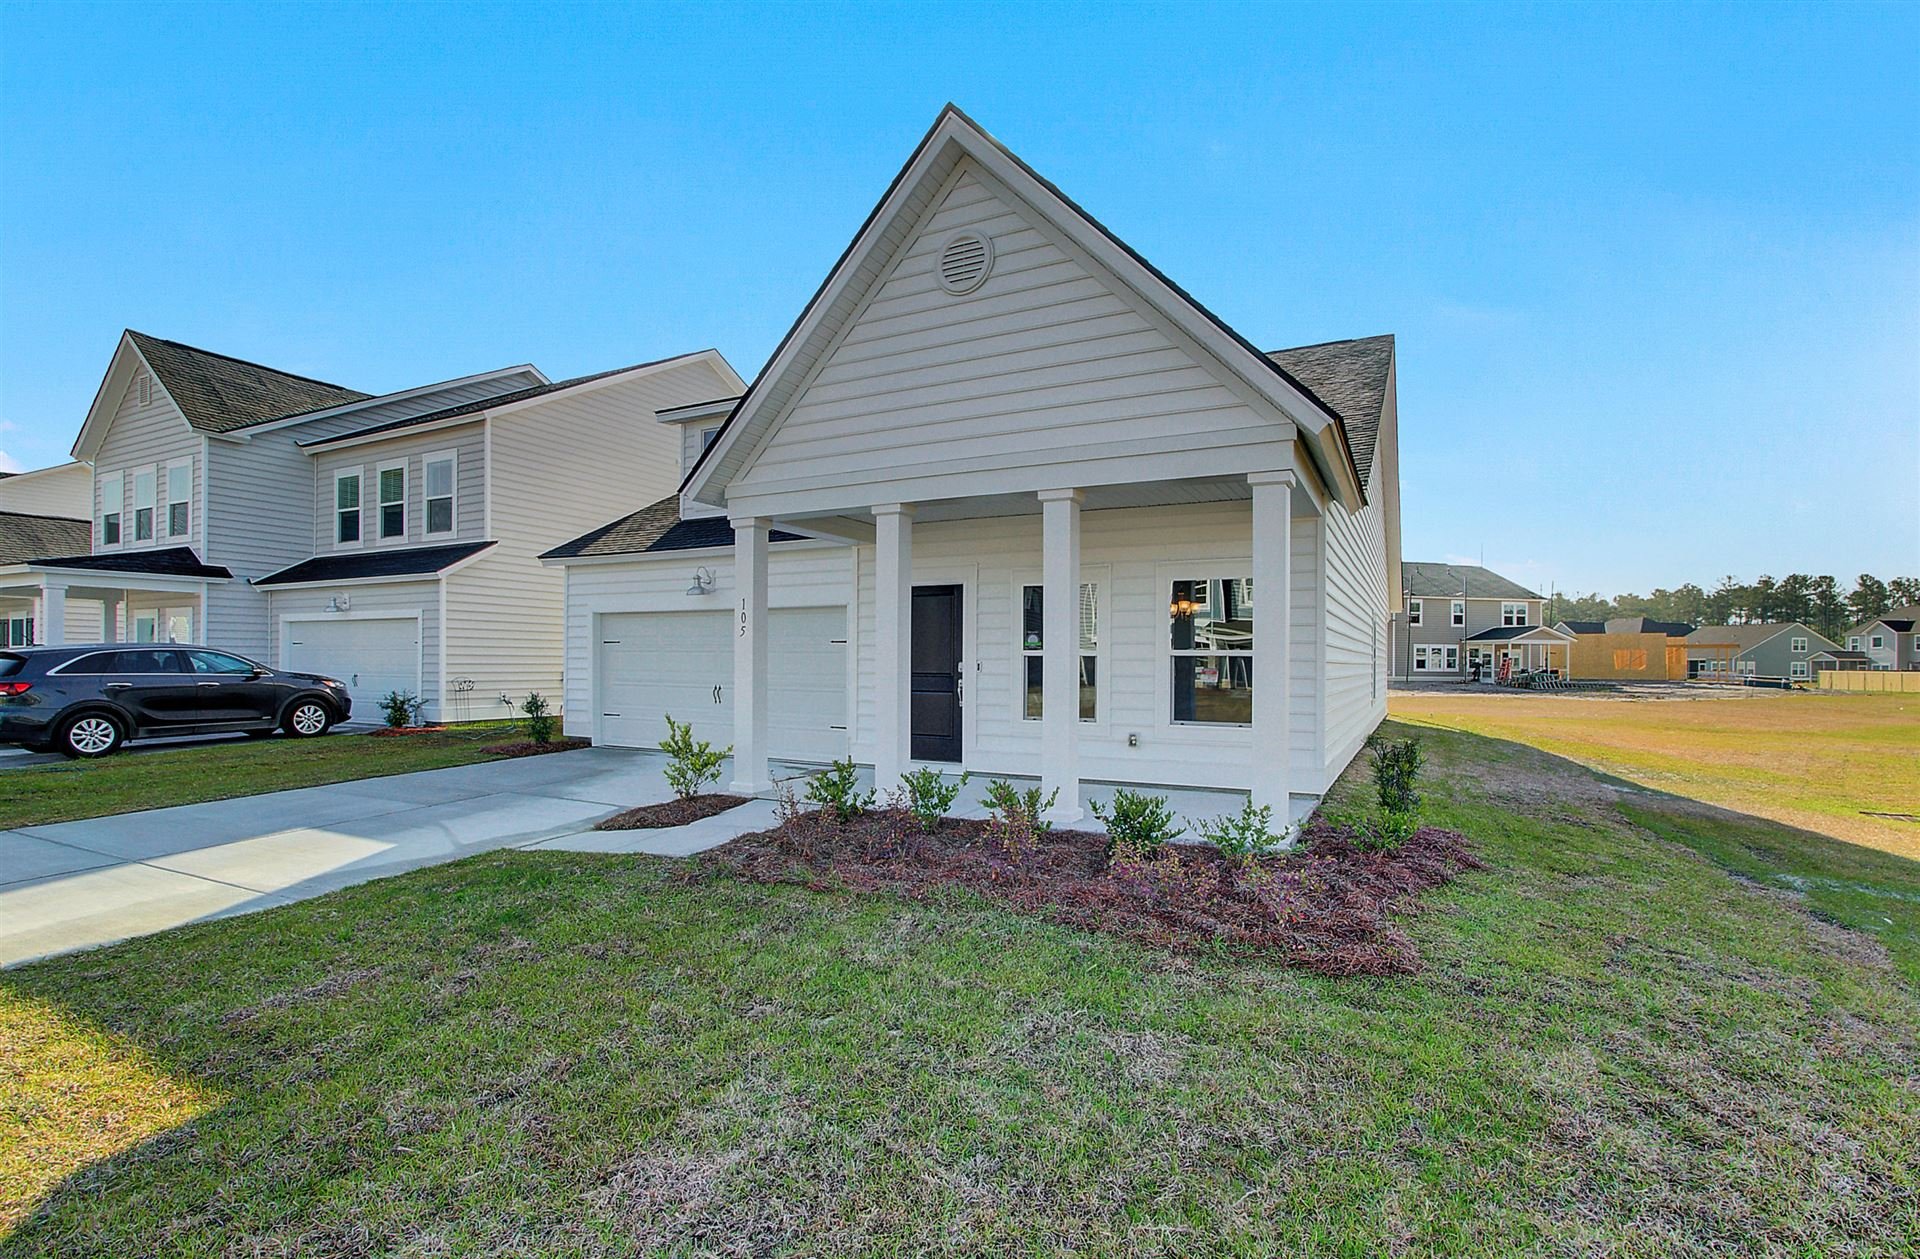 Photo of 105 Haverhill Street, Summerville, SC 29486 (MLS # 20032182)